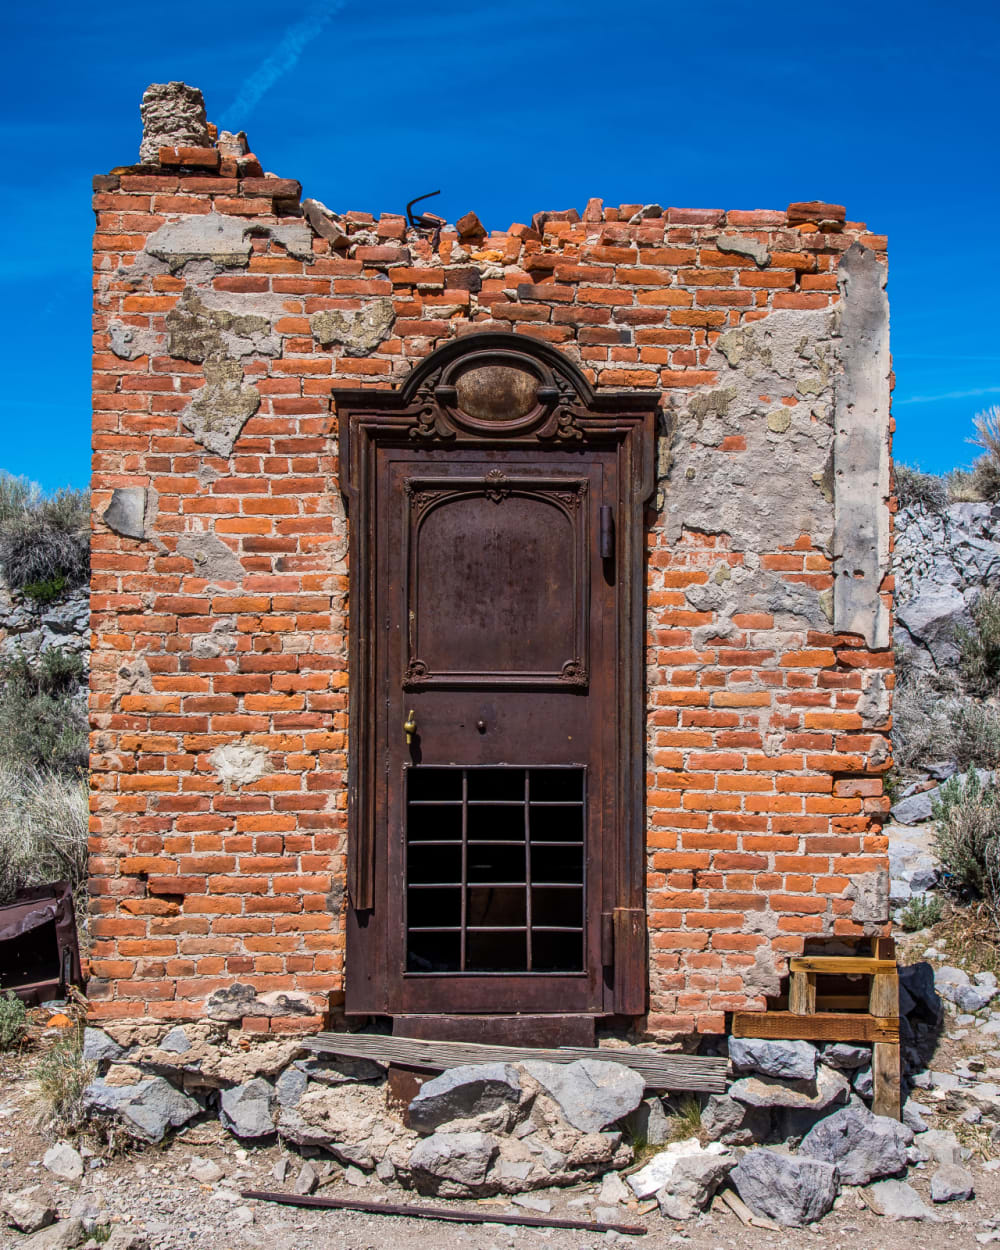 The Bank of Bodie